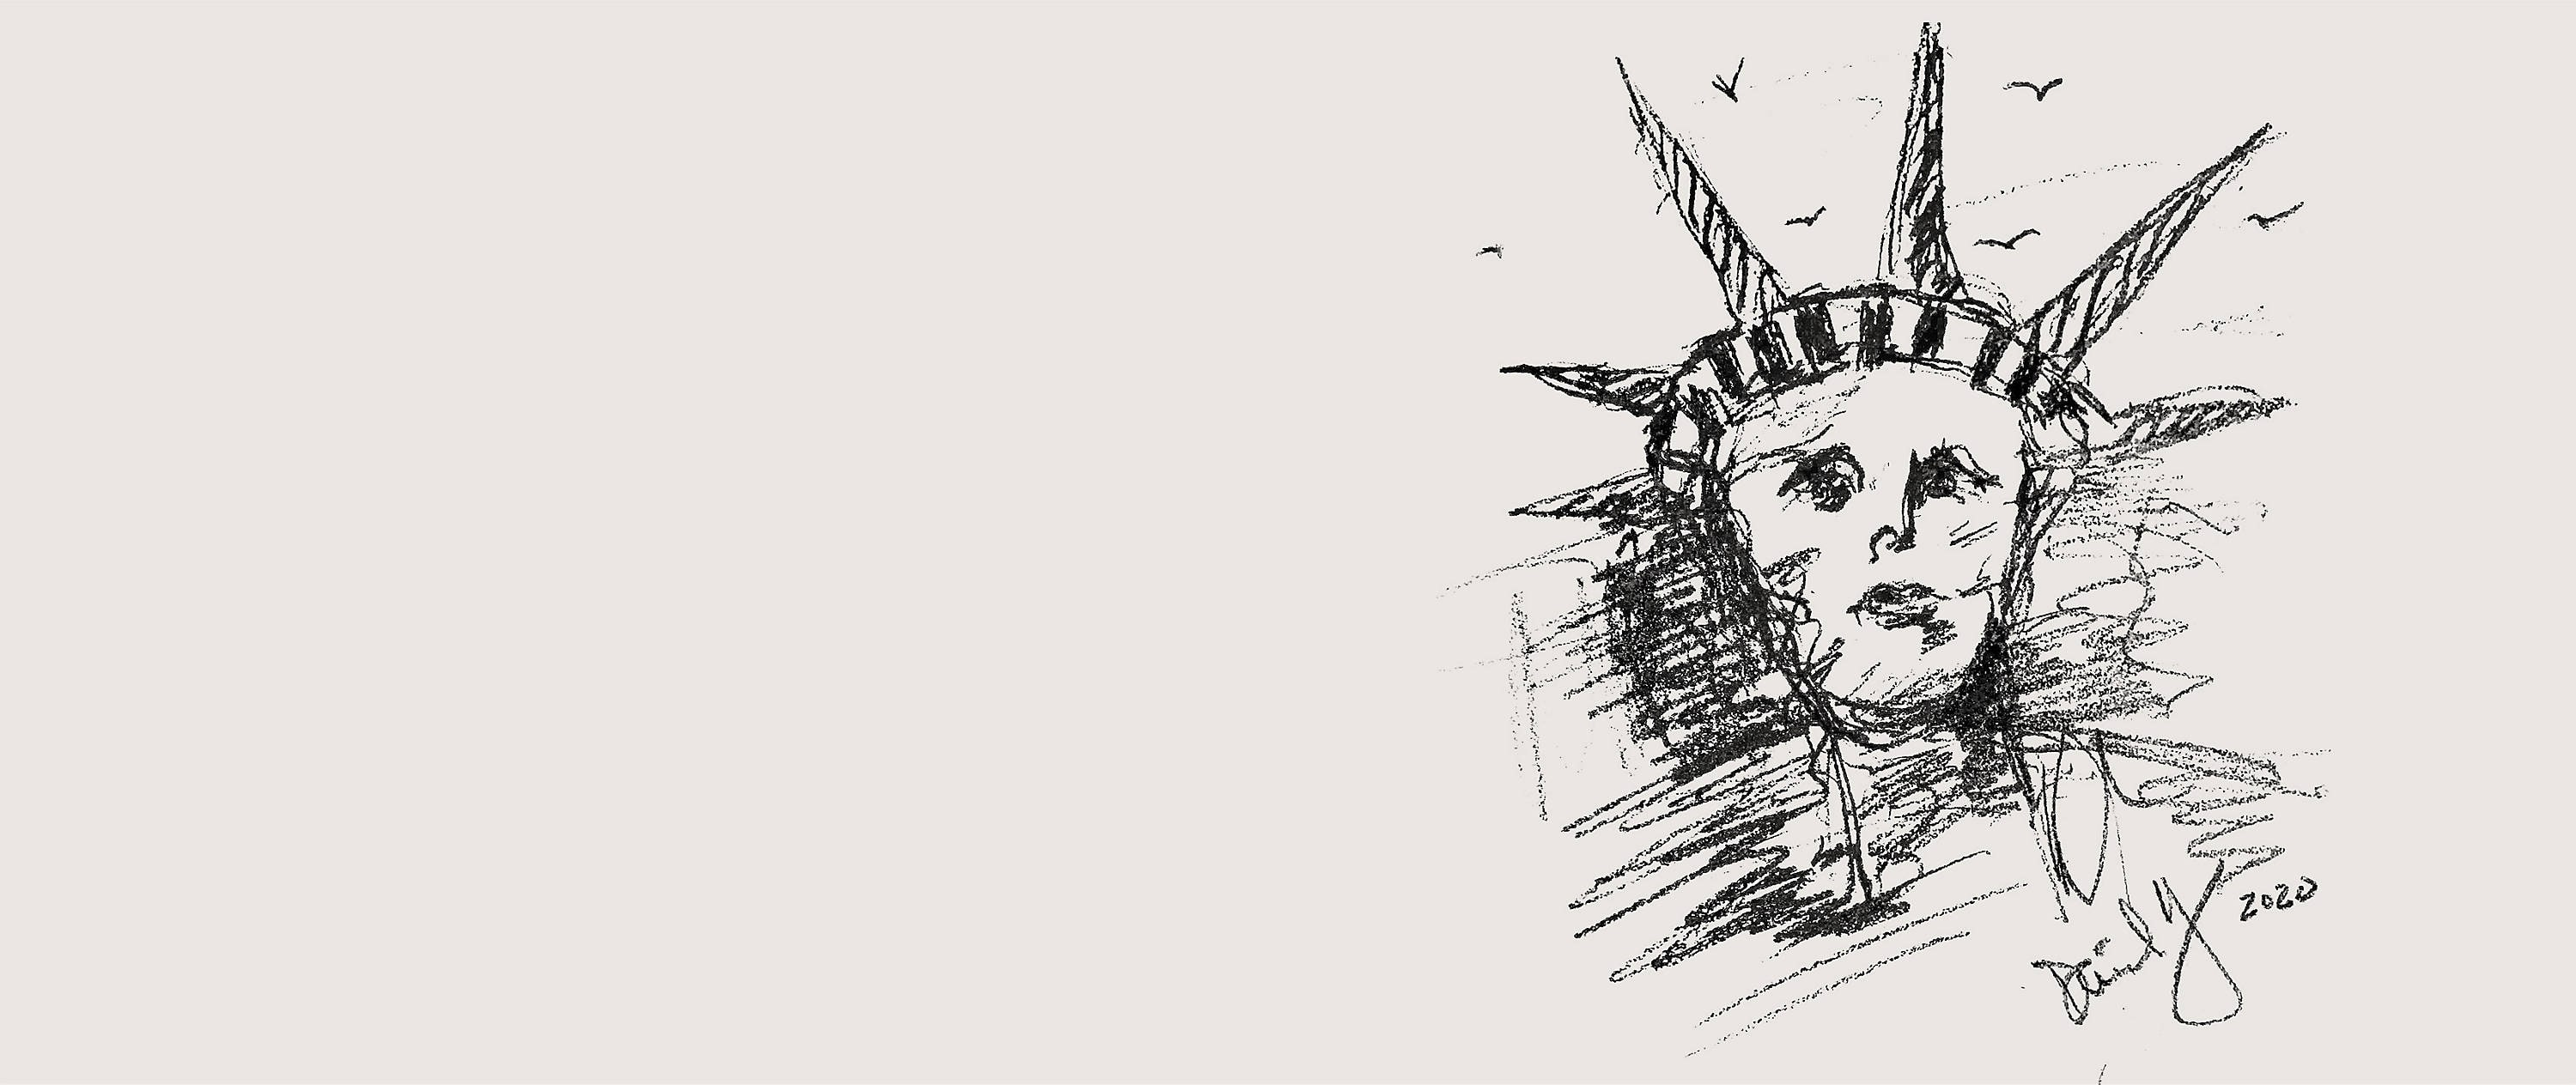 "A black-and-white sketch of the head of the Statue of Liberty, surrounded by birds and signed ""David Yurman 2020,"" is shown on the right side of the page against a beige banner"